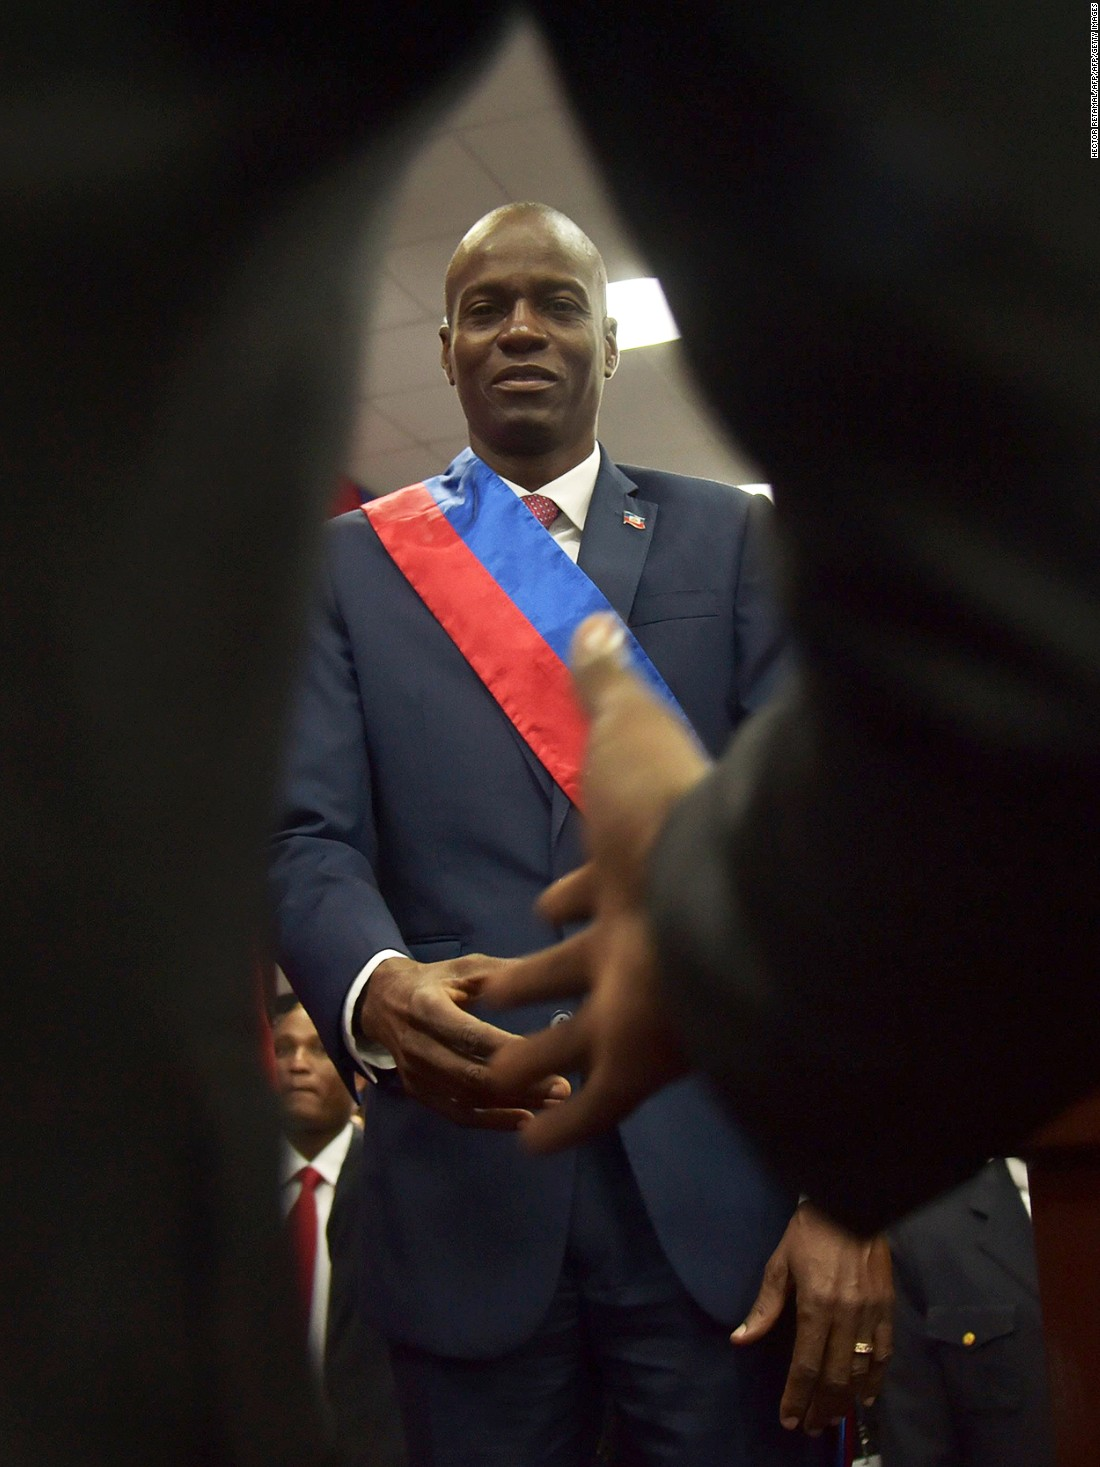 Haiti finally has a president